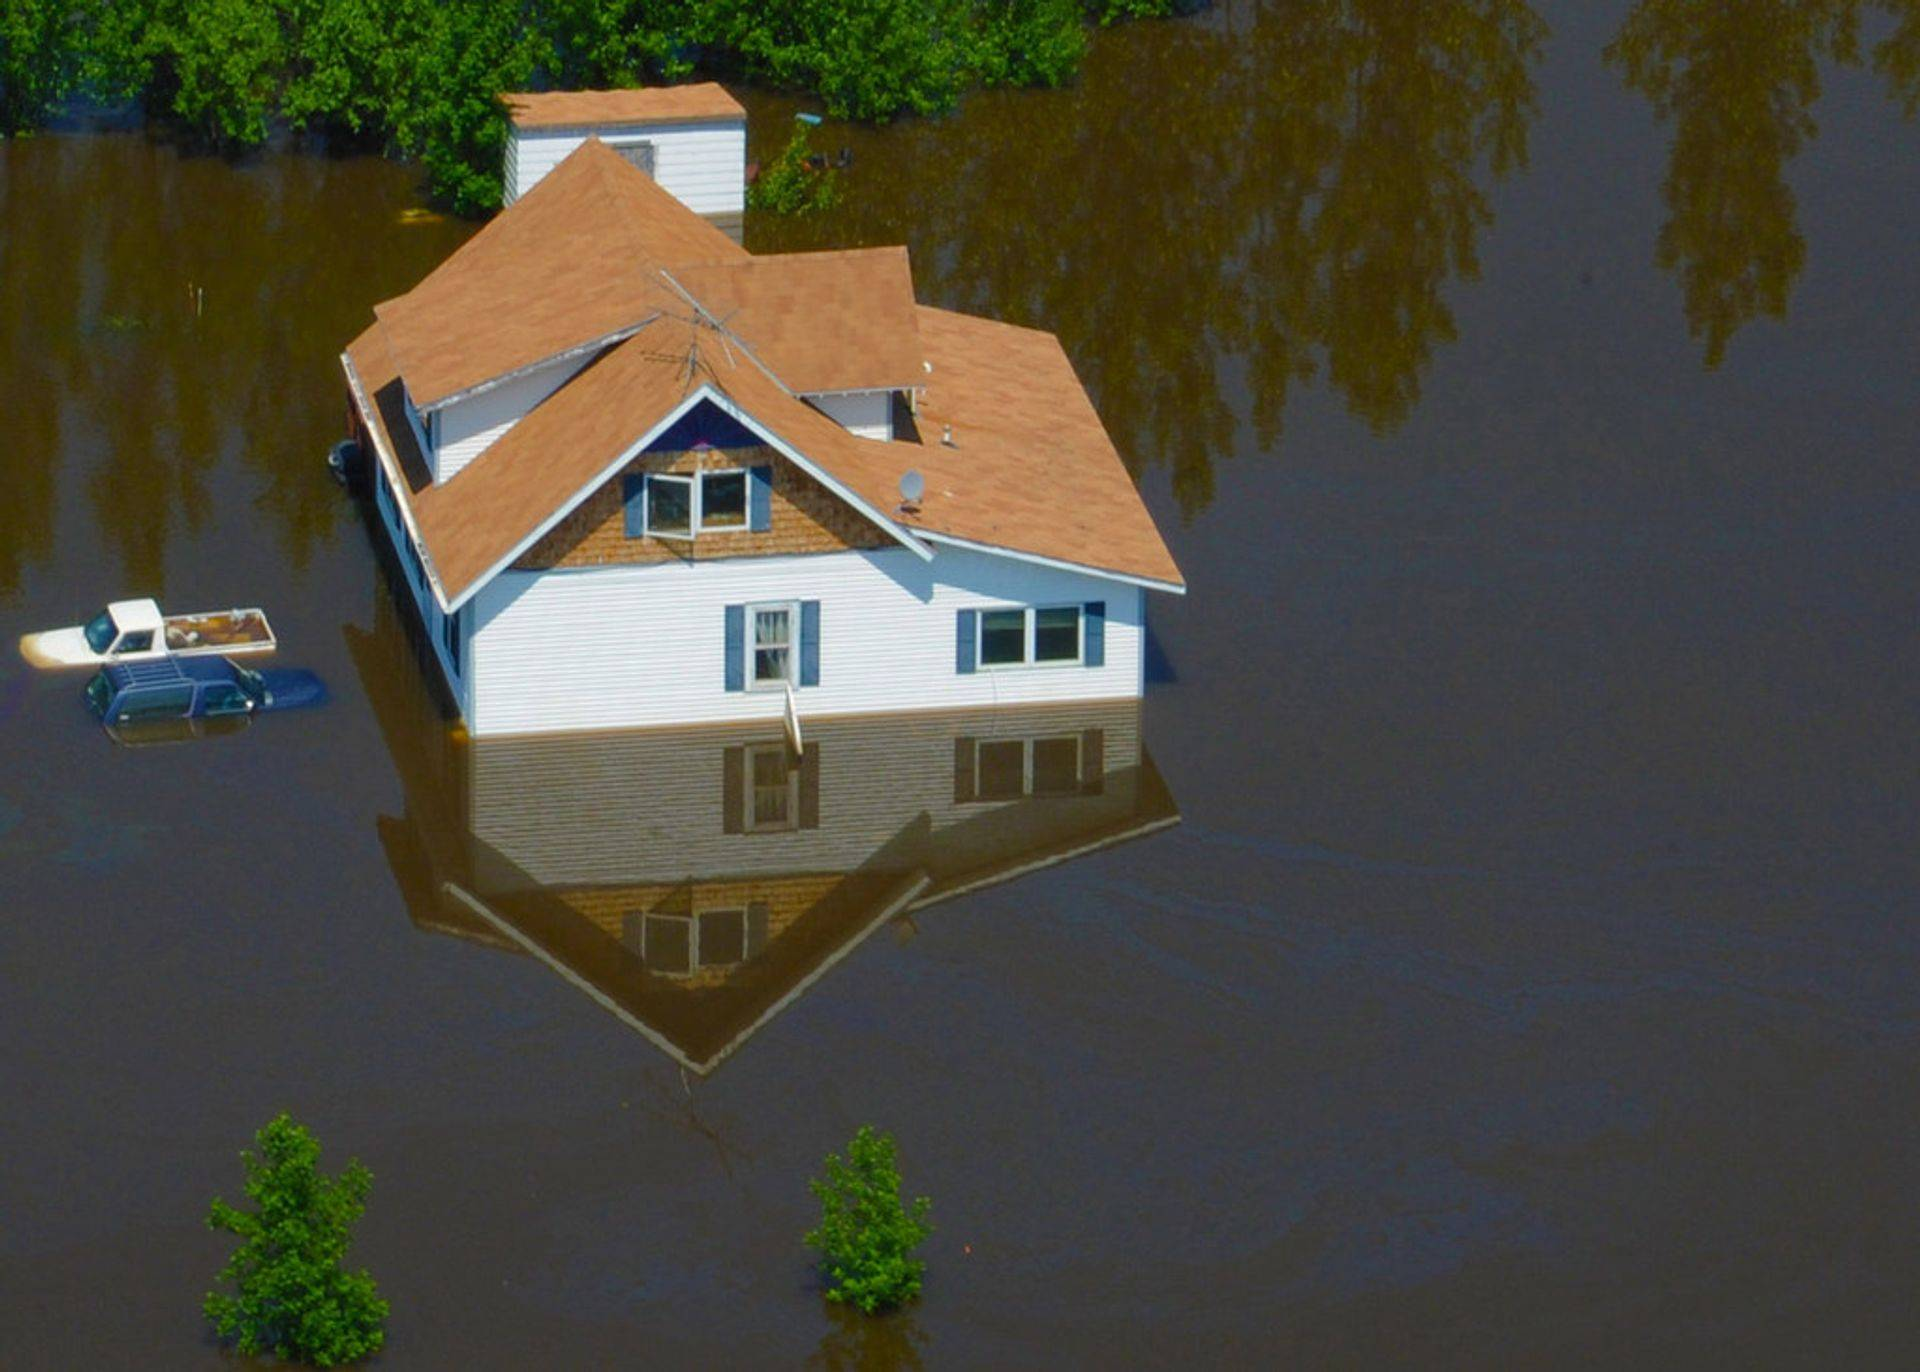 Flood damage Insurance claim